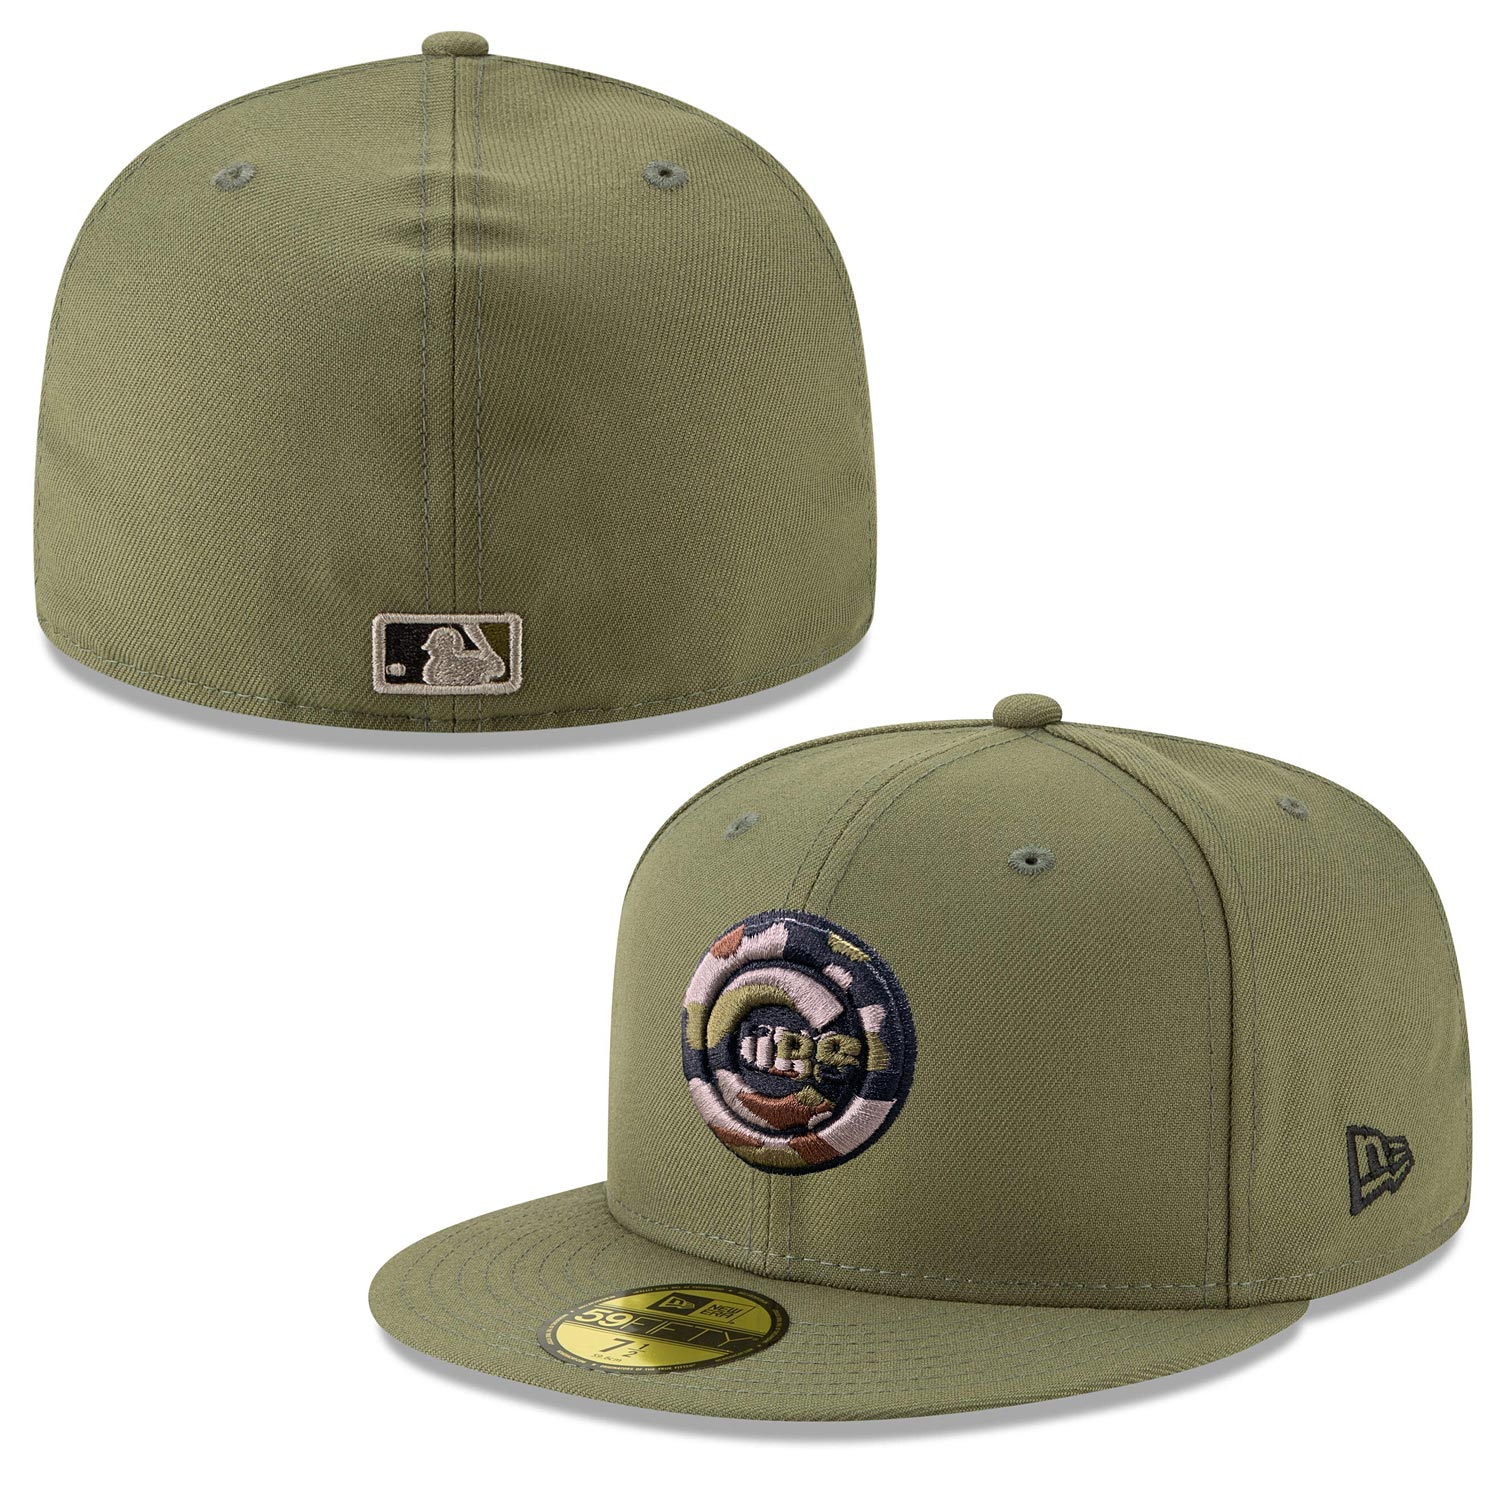 Chicago Cubs Camo Bullseye Camo 59/50 Fitted Hat